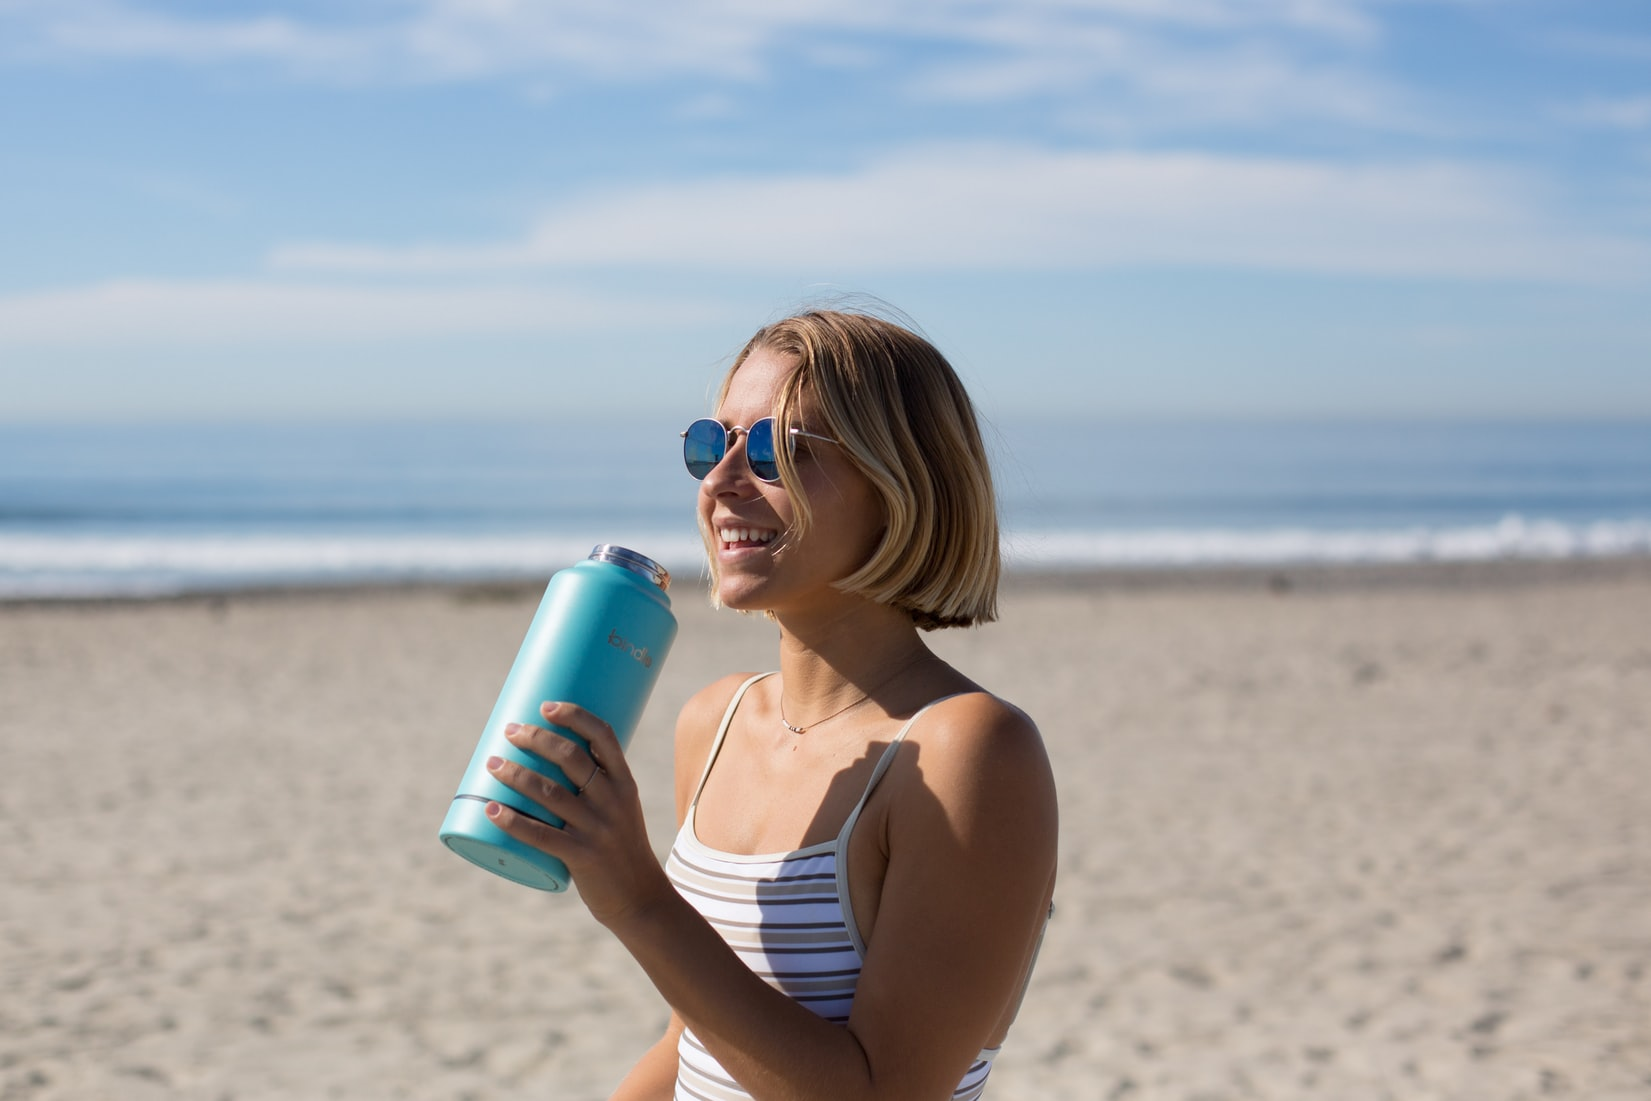 Make sure you drink enough water every day by bringing along a water bottle.